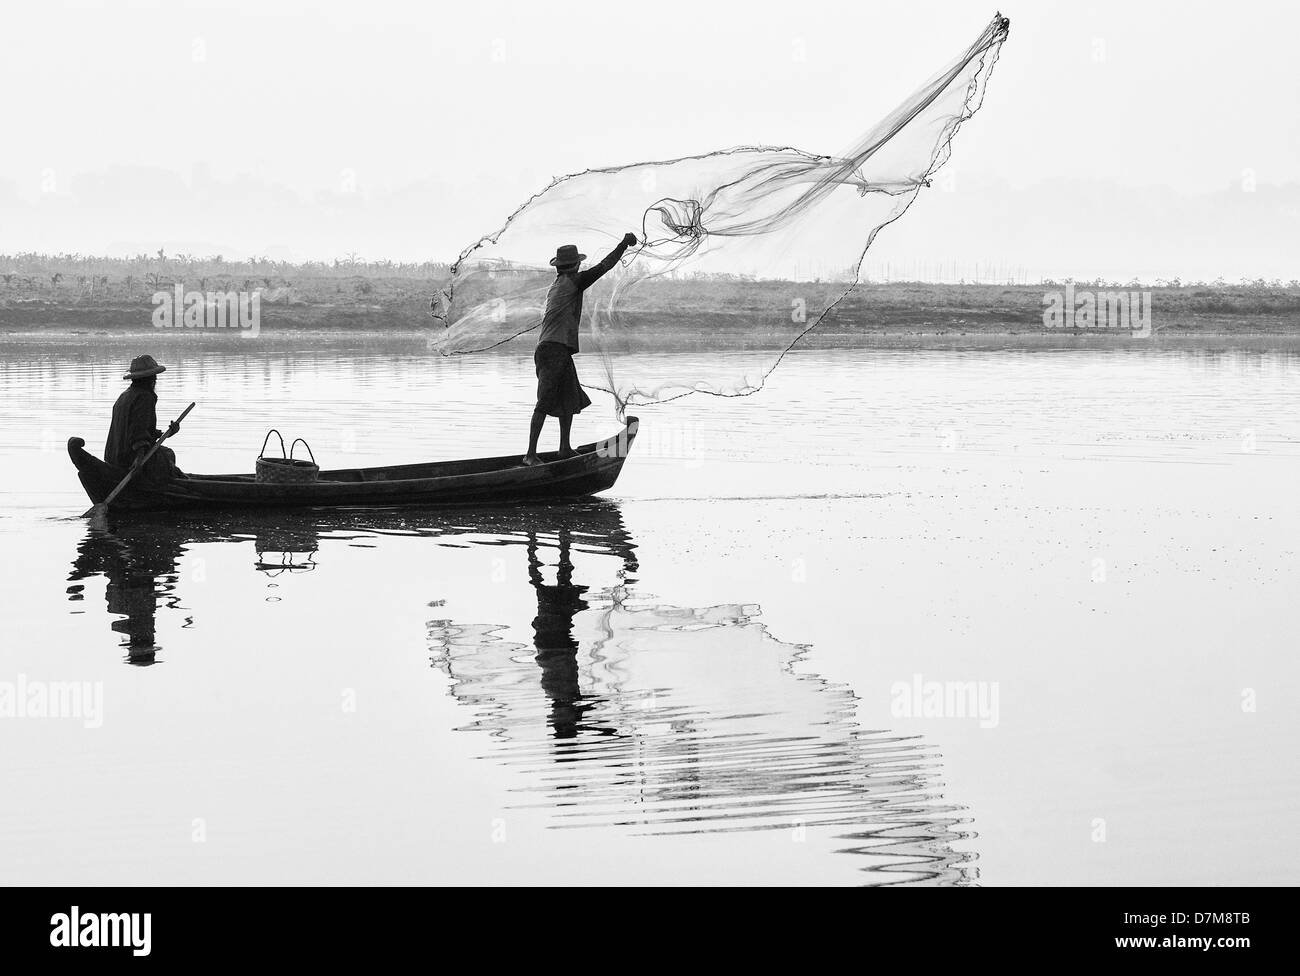 Fishermen on the Taungthaman Lake, Amarapura, Mandalay, Burma (Myanmar) - Stock Image